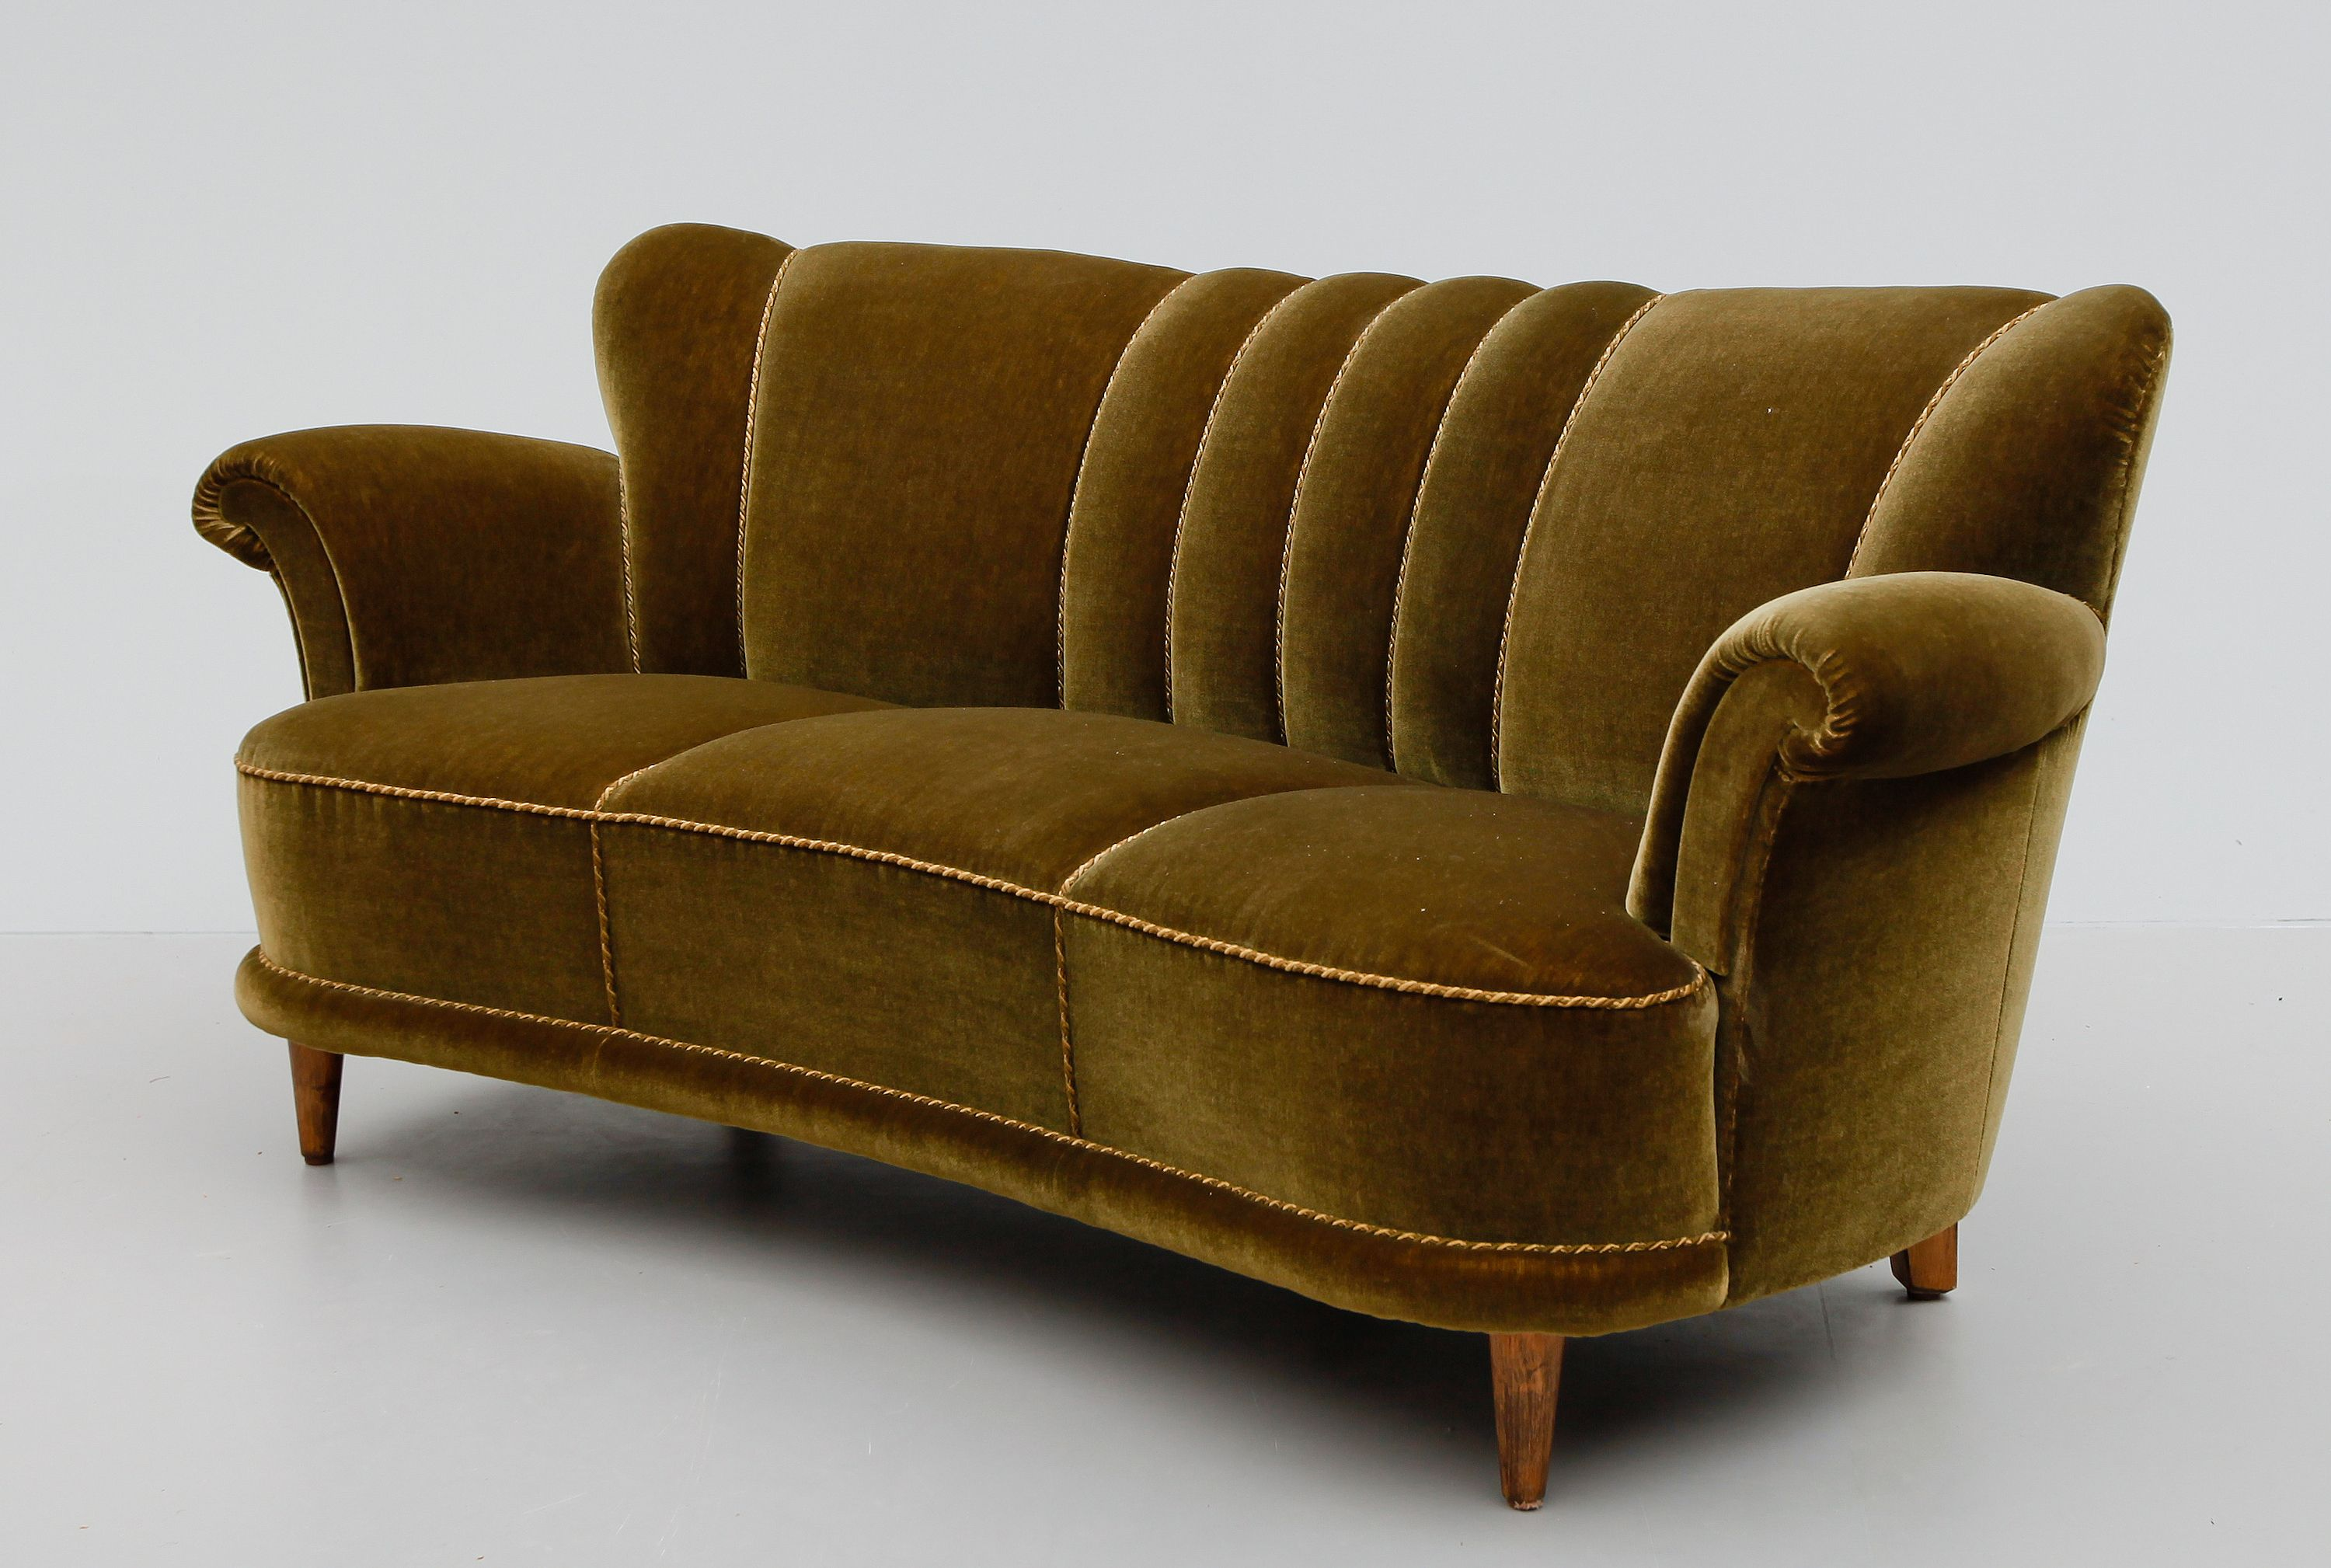 a sofa in the forties reclining sofas and loveseats cheap 1940s cars had curves women